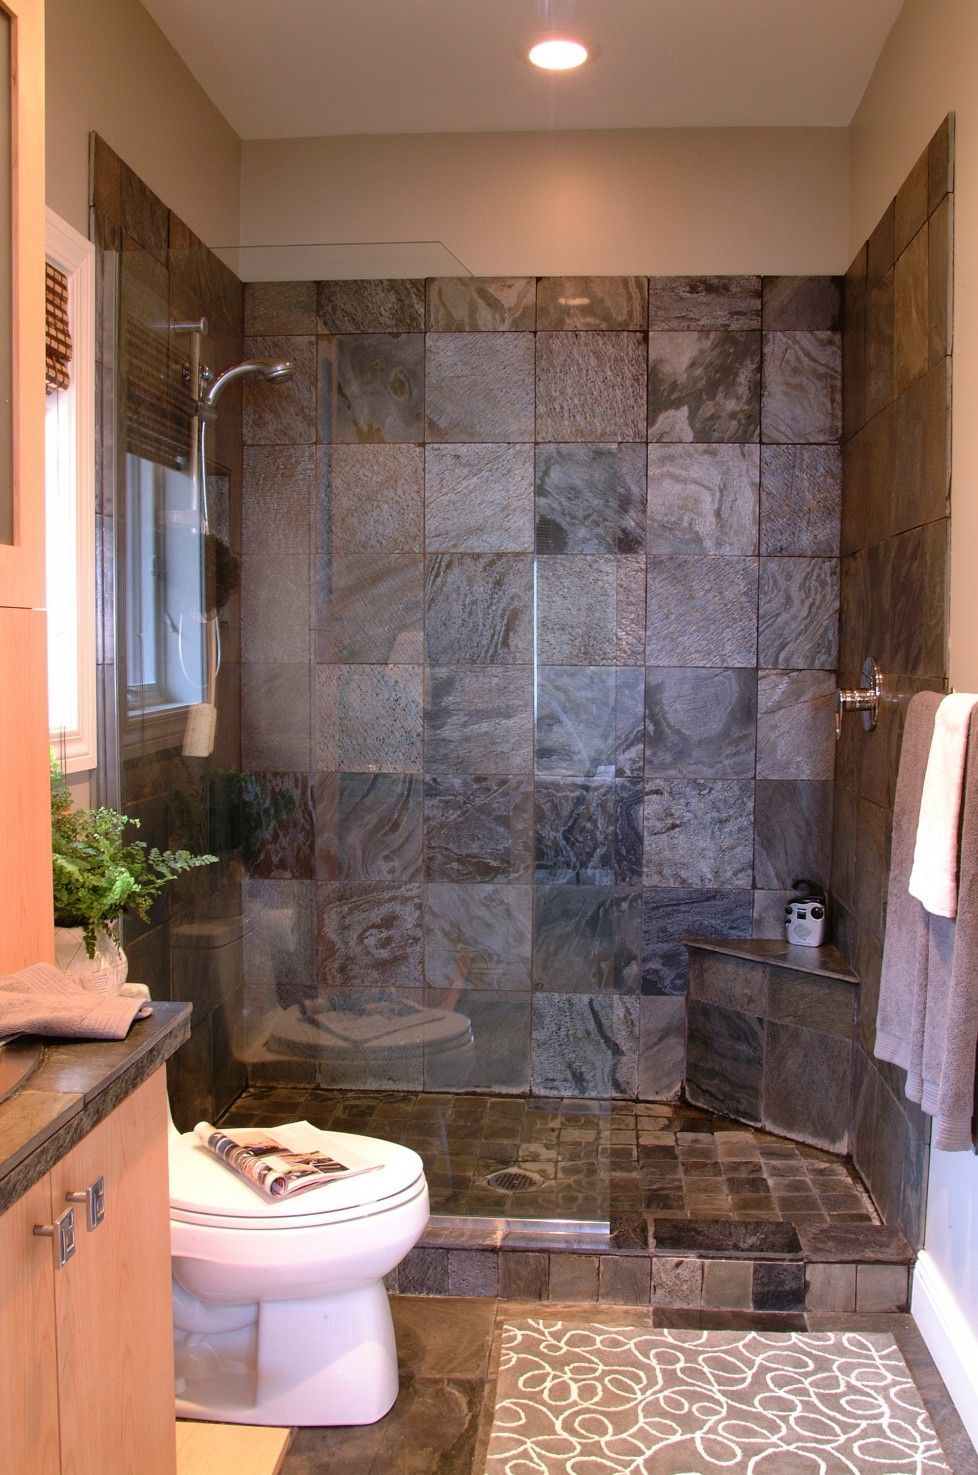 10+ Walk-in Shower With Seat Ideas - On a Budget and ...